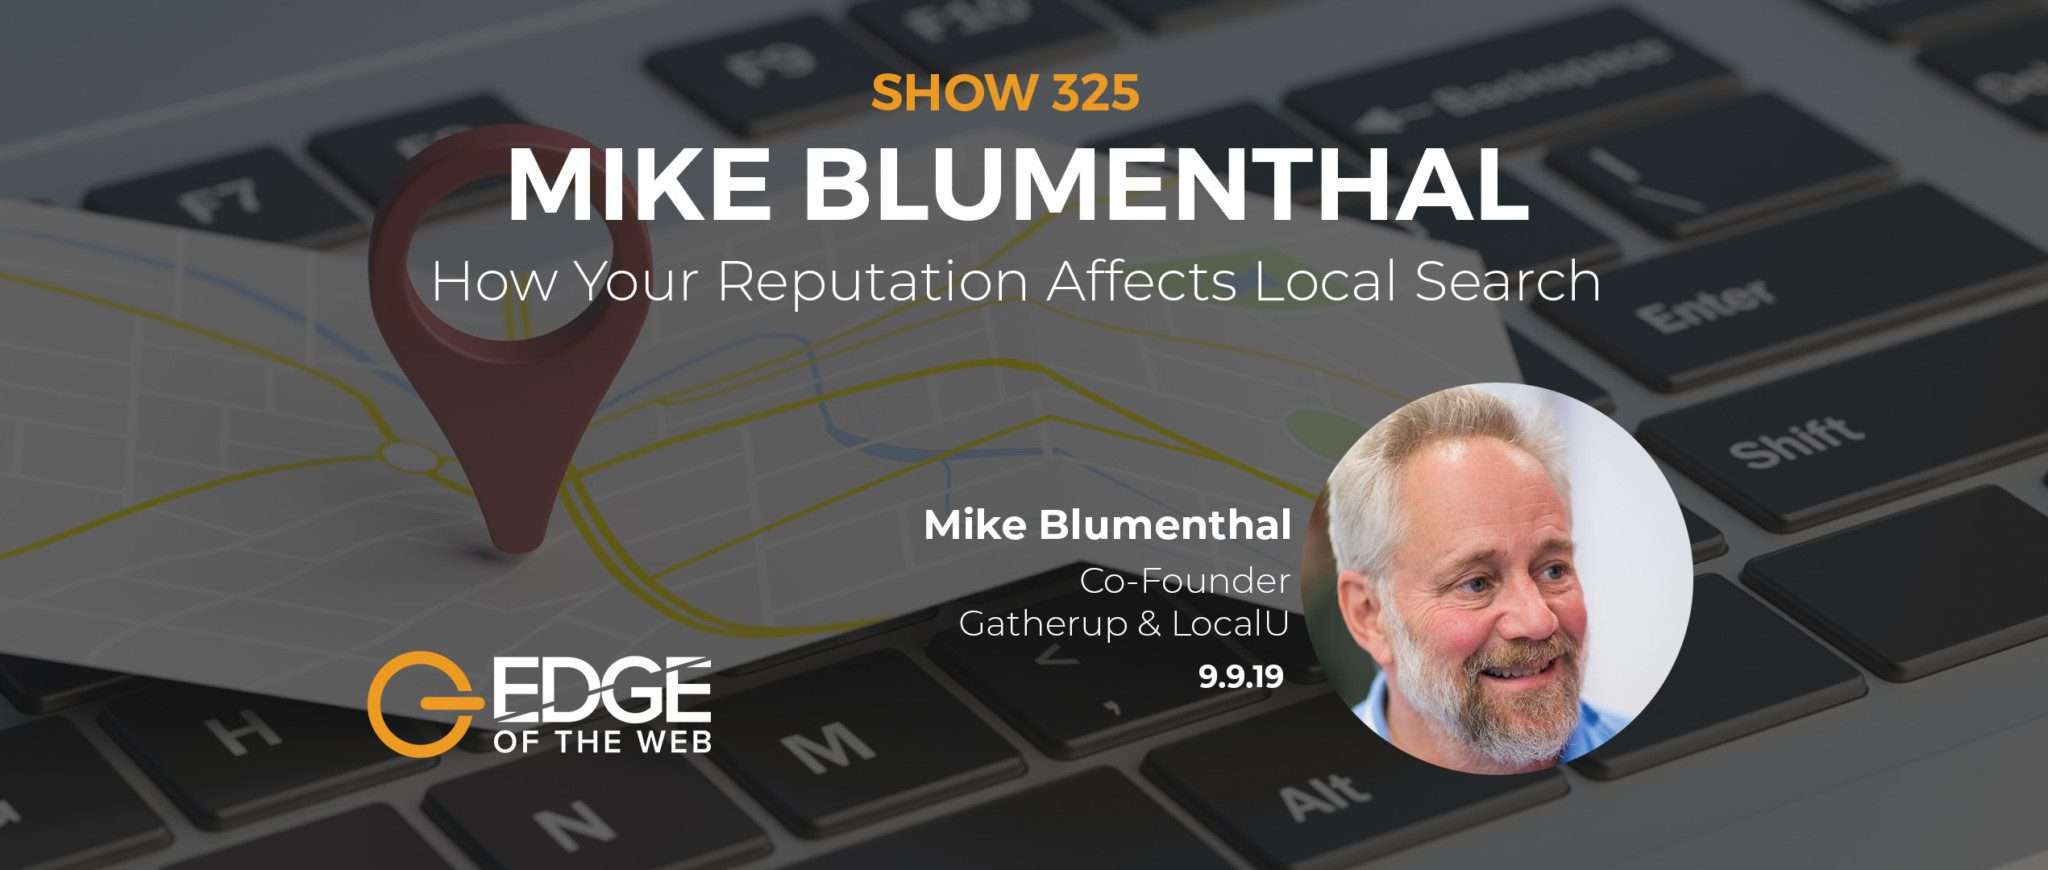 Show 325: How your reputation affects local search, featuring Mike Blumenthal